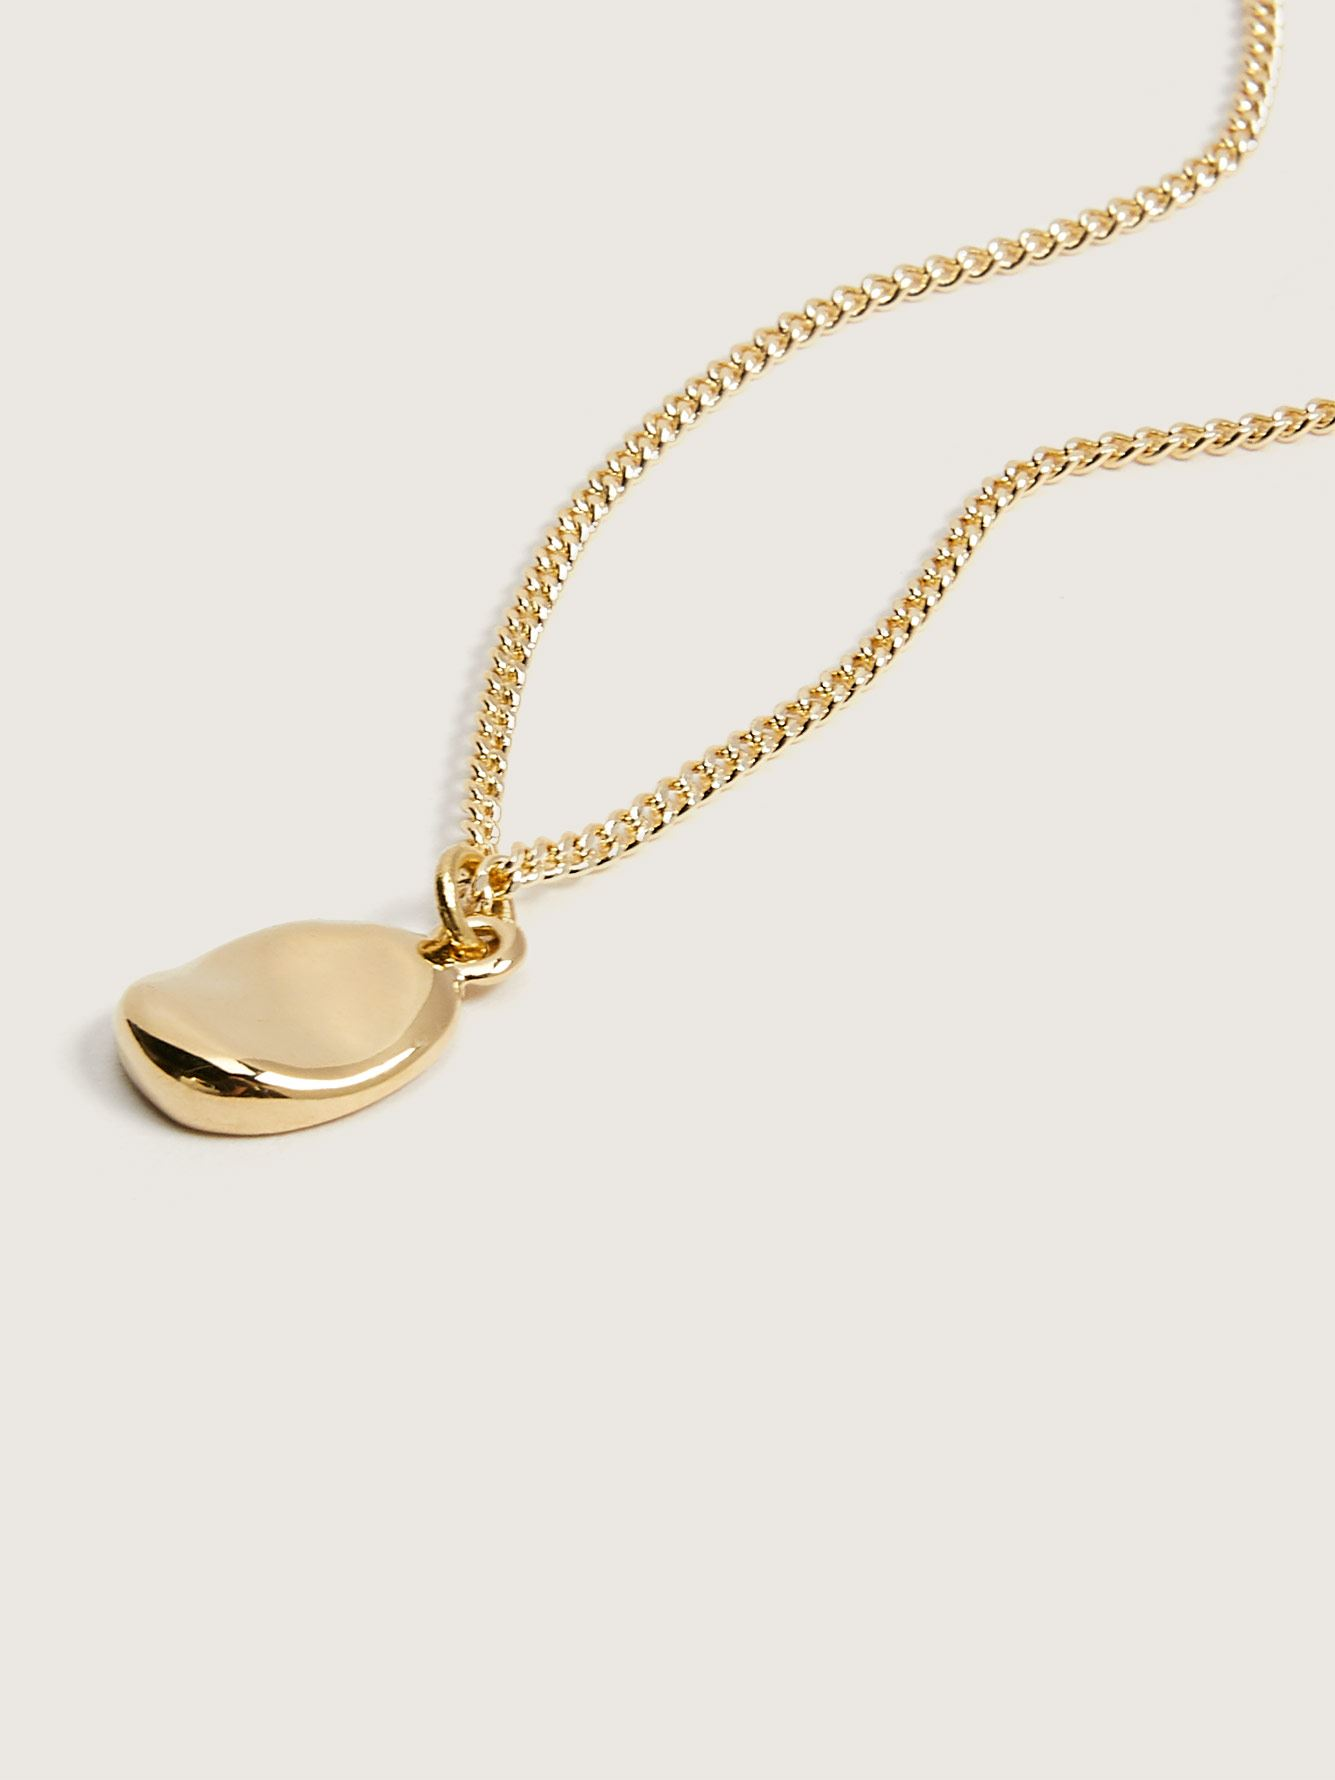 14K Plated Capri Pendant Necklace - Biko